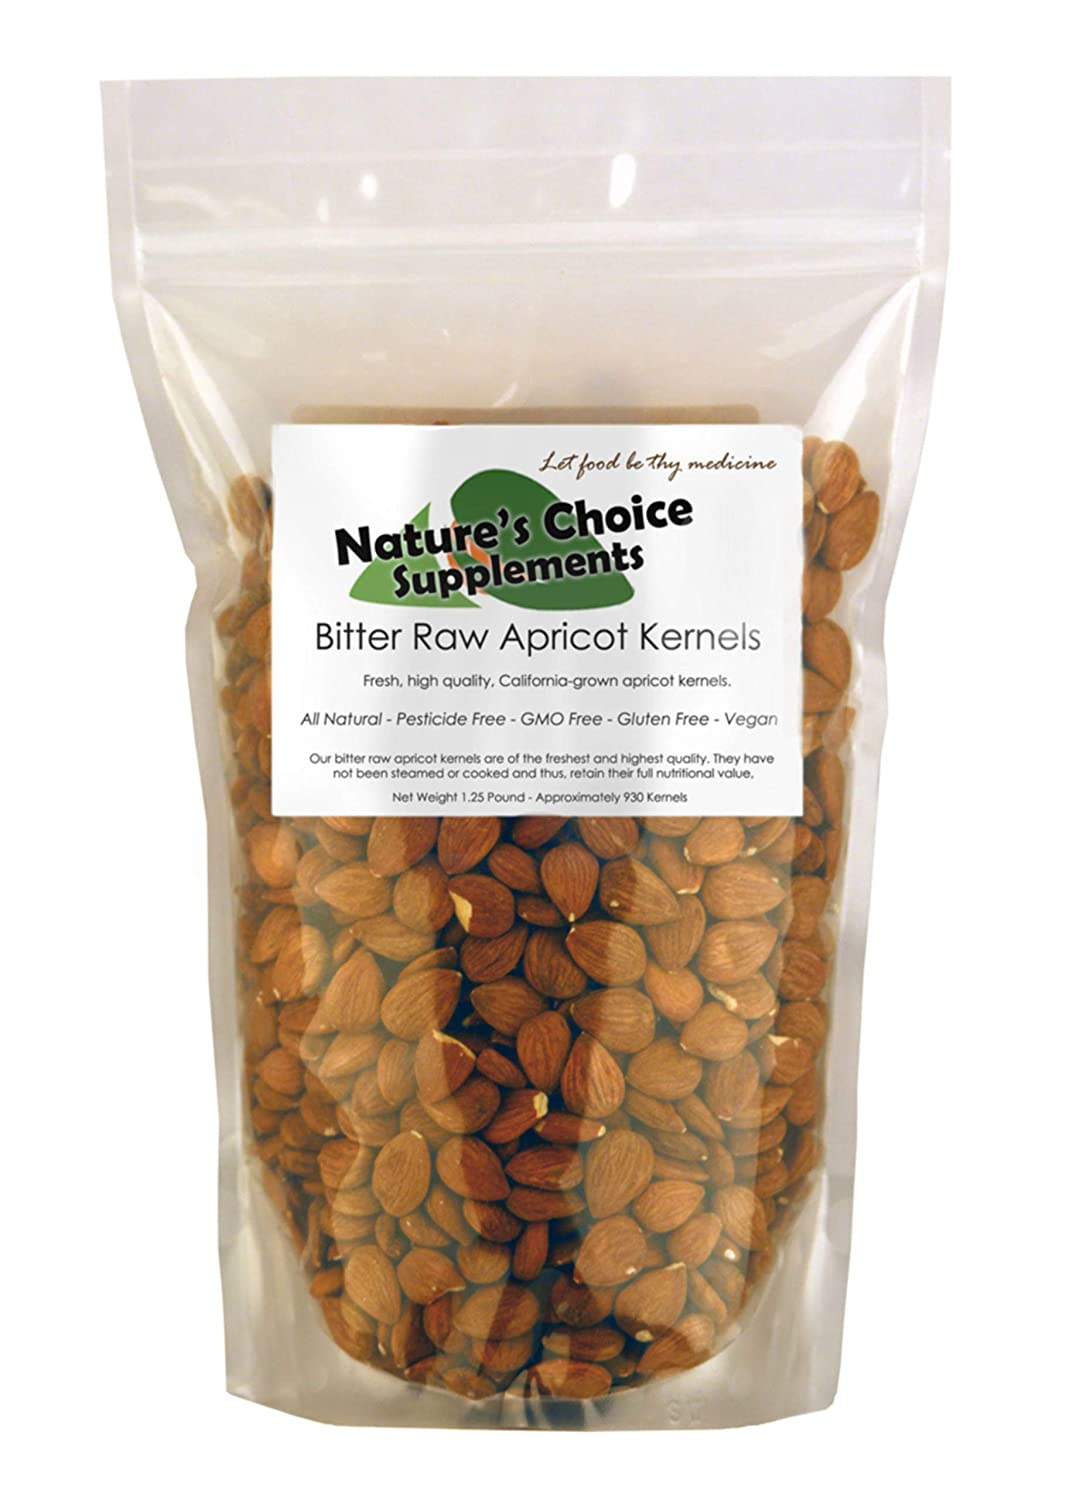 Bitter Apricot Kernels, 1 pound, 750 Raw Apricot Seeds, 100% All Natural, GMO Free, Pesticide Free, Gluten Free, Vegan.